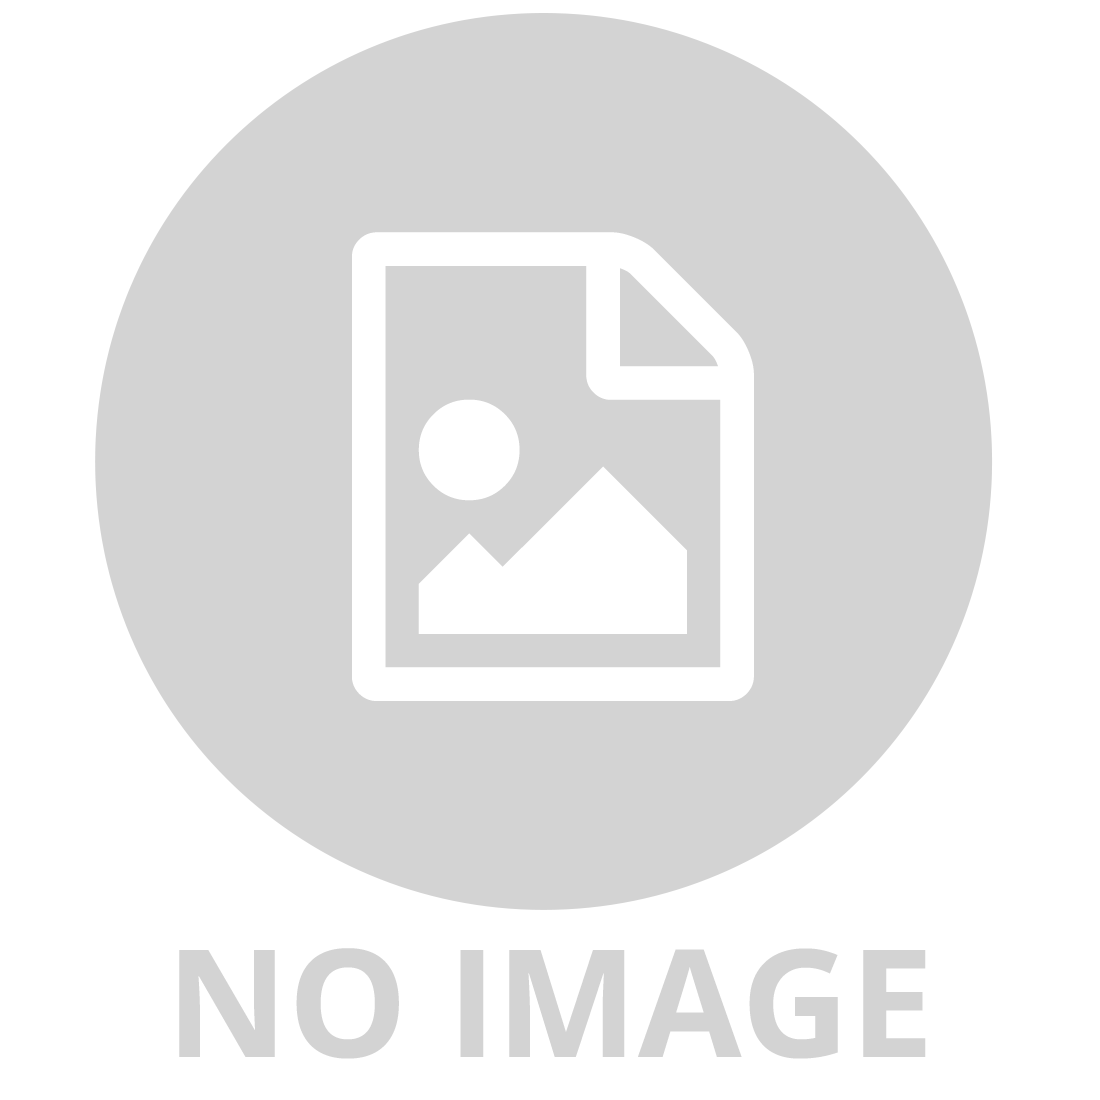 HOT WHEELS TRACK BUILDER - 2 LANE LAUNCHER